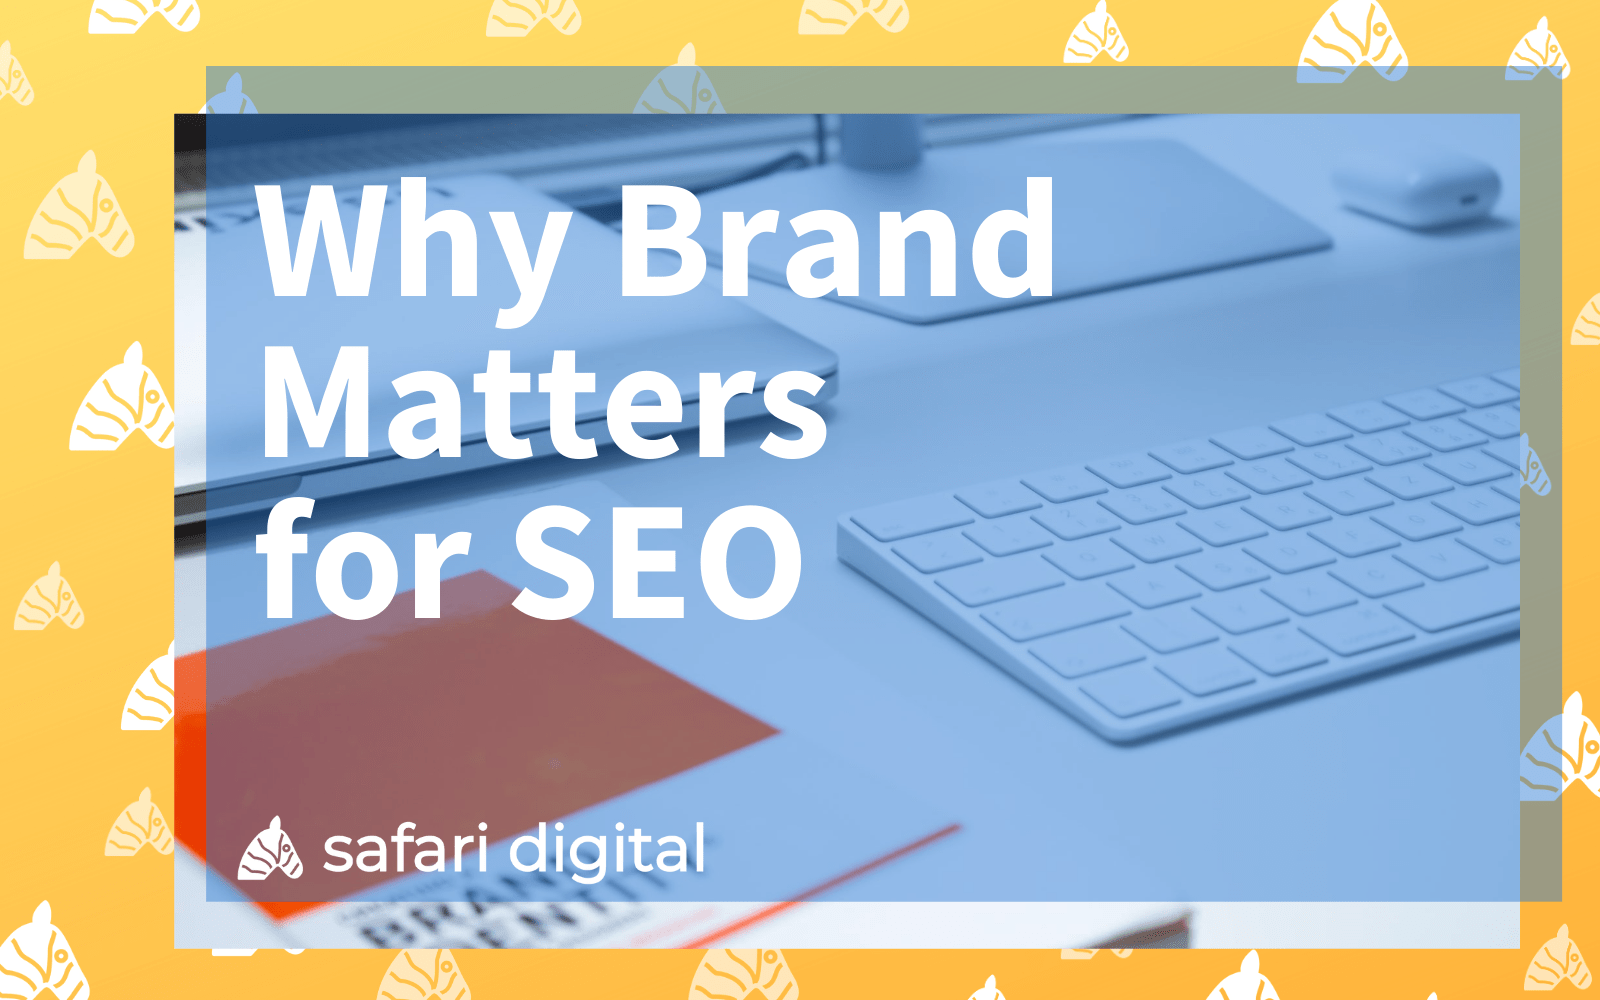 why brand matters for SEO cover image